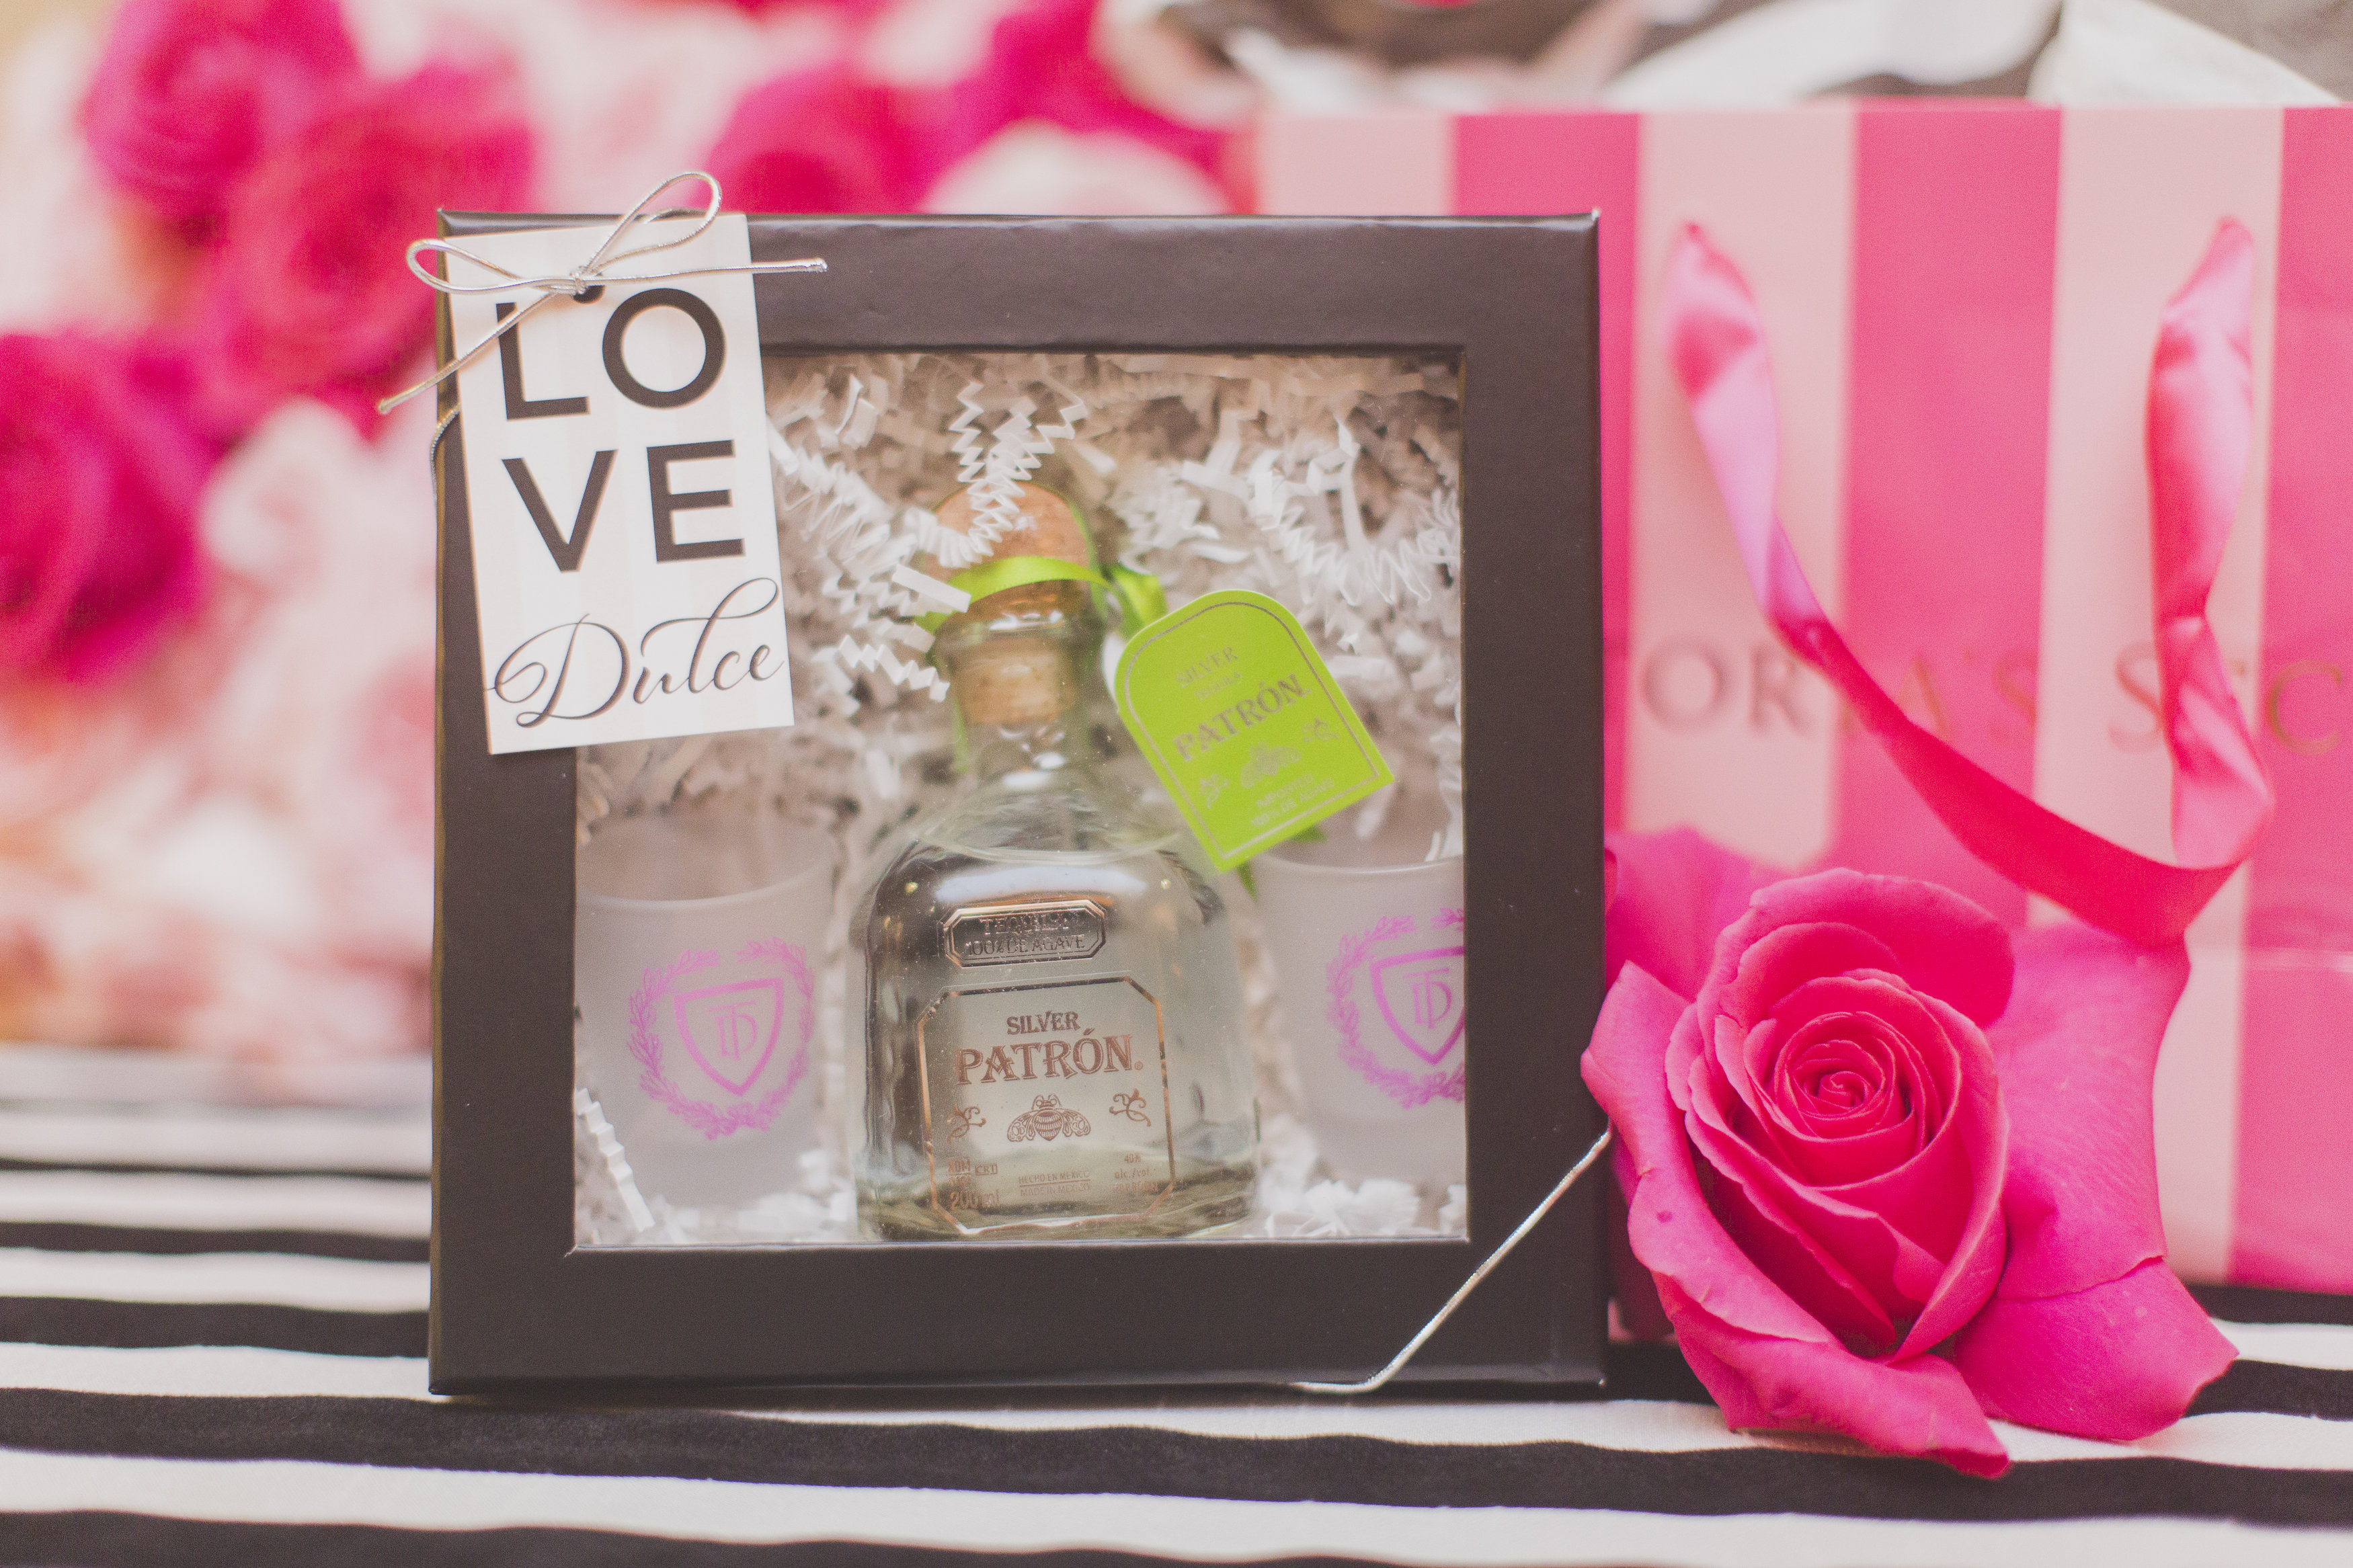 PINK party xoxo Tequila shot glass favor | Occasio Productions